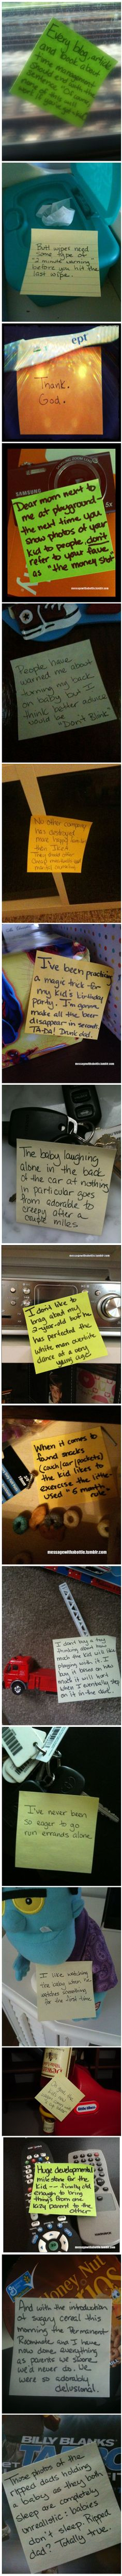 More Post-It Notes From a Stay-At-Home Dad | Mommy Has A Potty MouthMommy Has A Potty Mouth